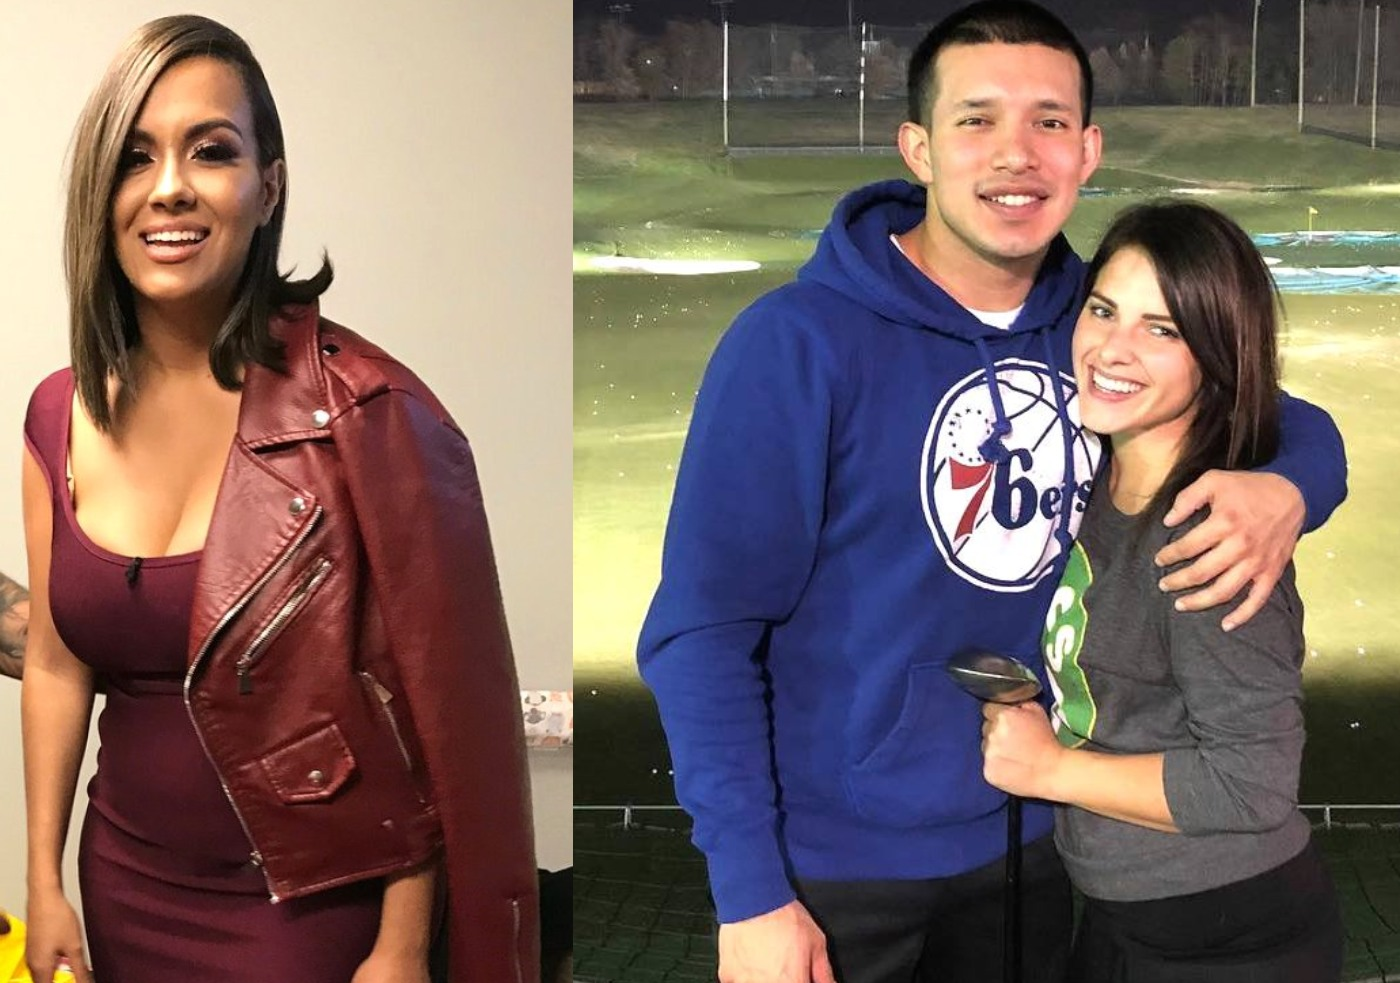 Teen Mom 2 Briana DeJesus Javi Marroquin and Lauren Comeau